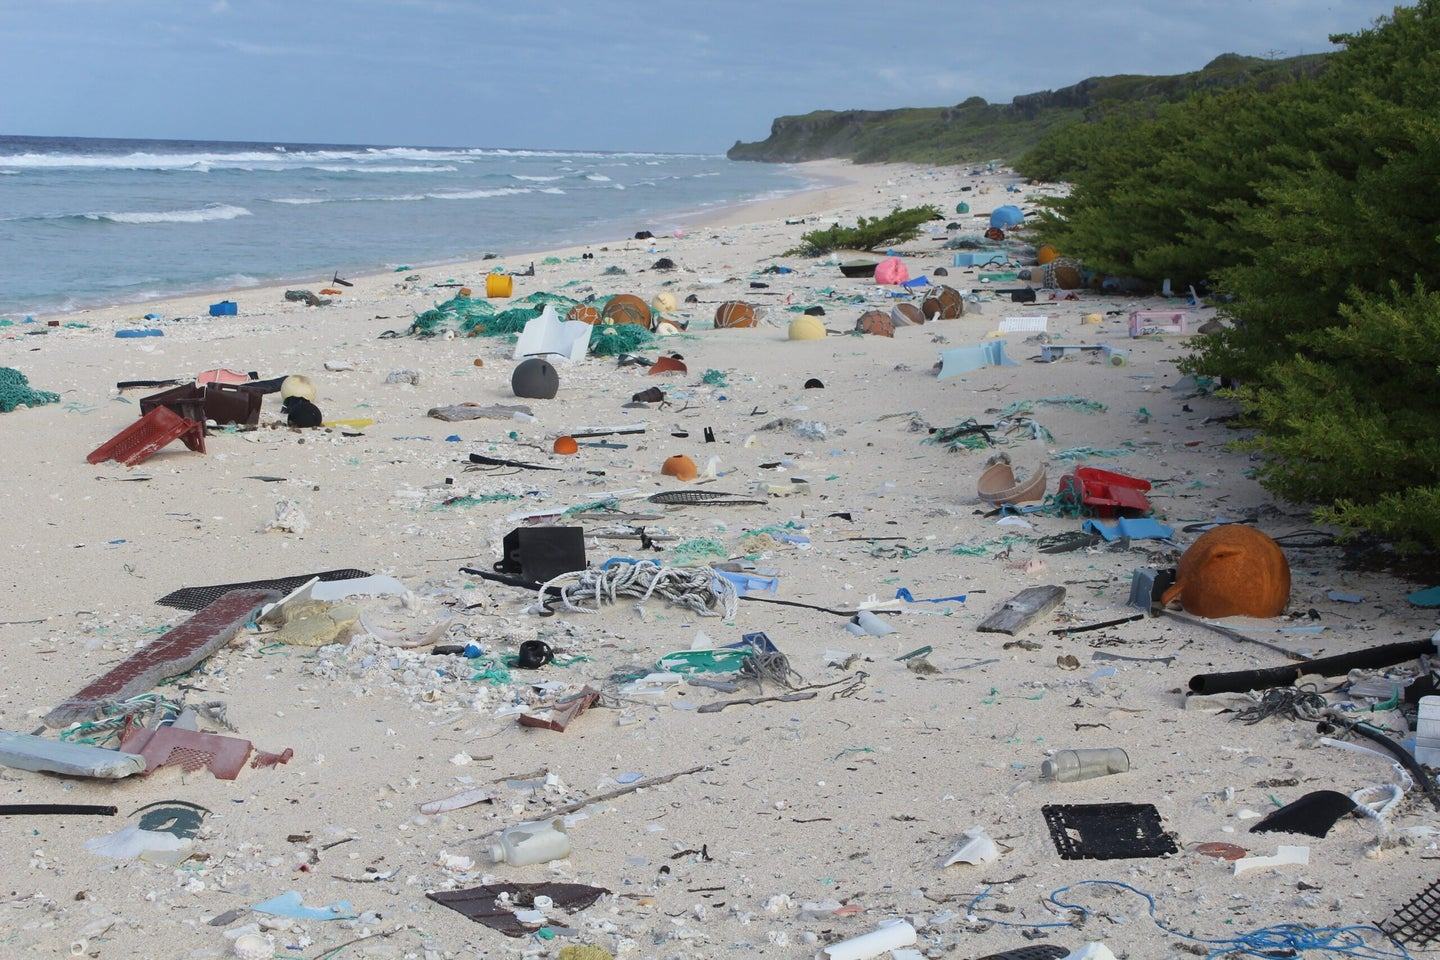 This remote island in the South Pacific is covered in 18 tons of our trash